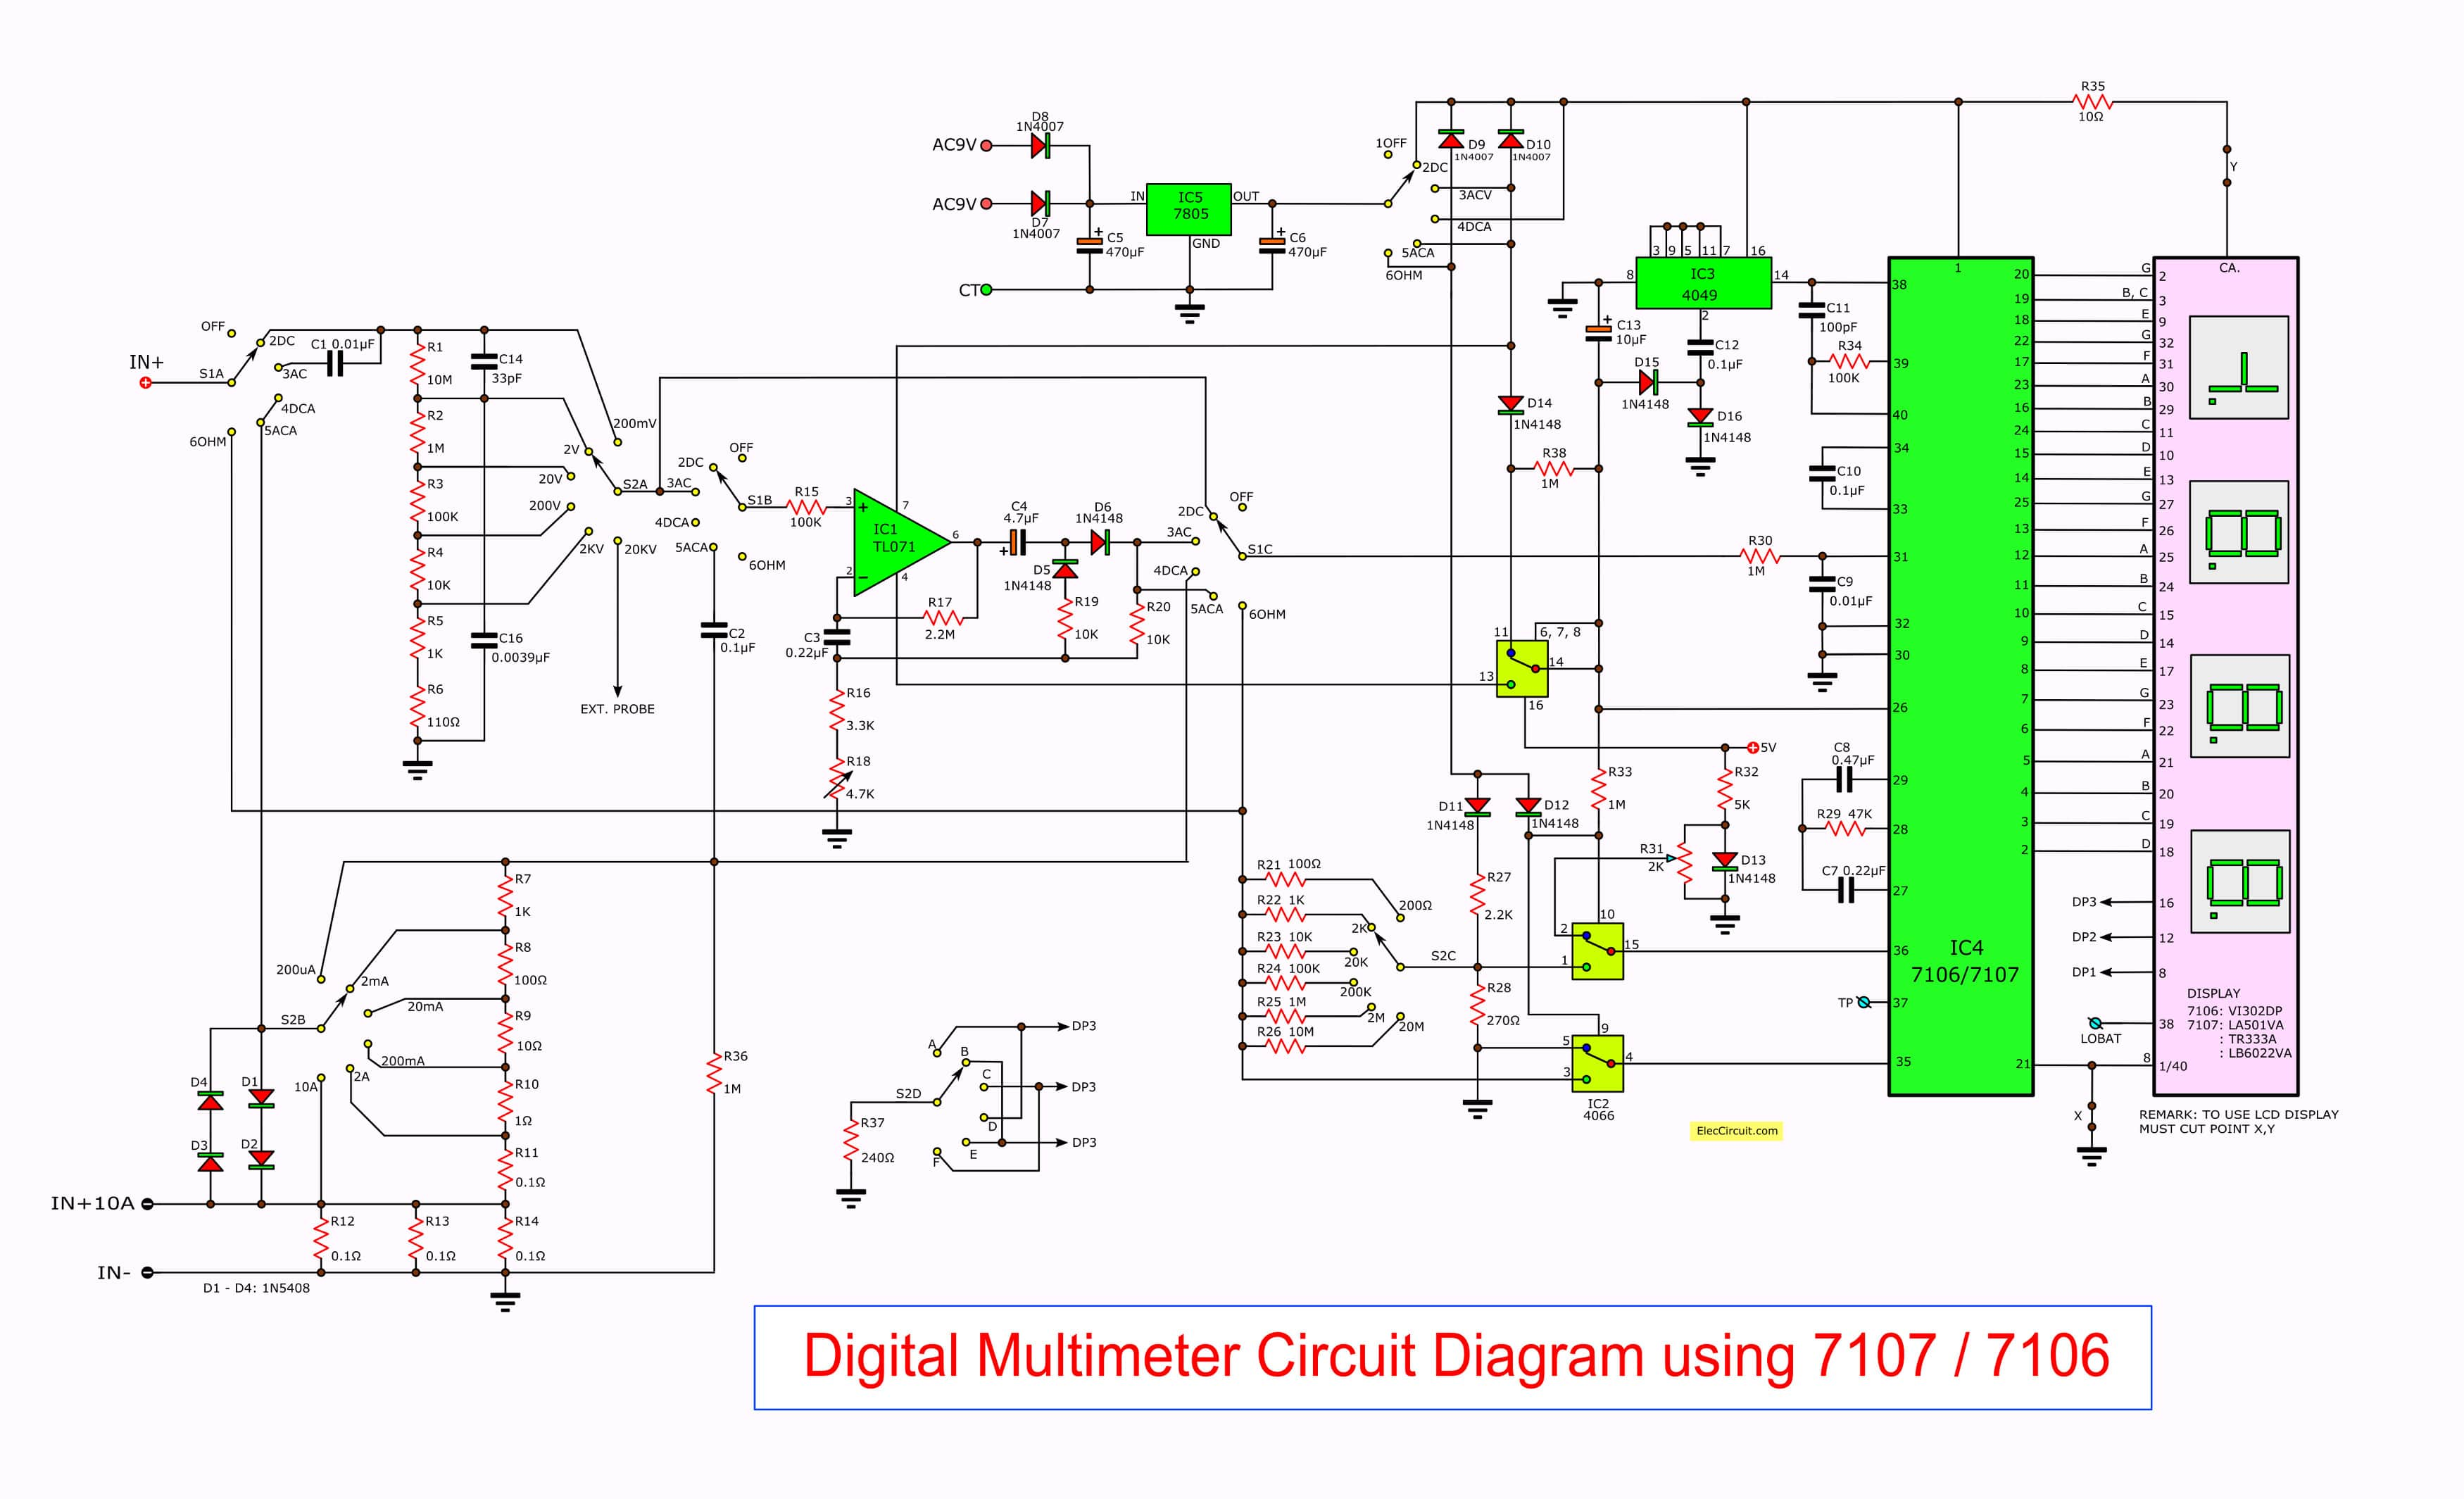 Dc Voltmeter Wiring Diagram Wire Center Gauge Digital Multimeter Circuit Using Icl7107 Rh Eleccircuit Com Volt Gm 1 Alternator